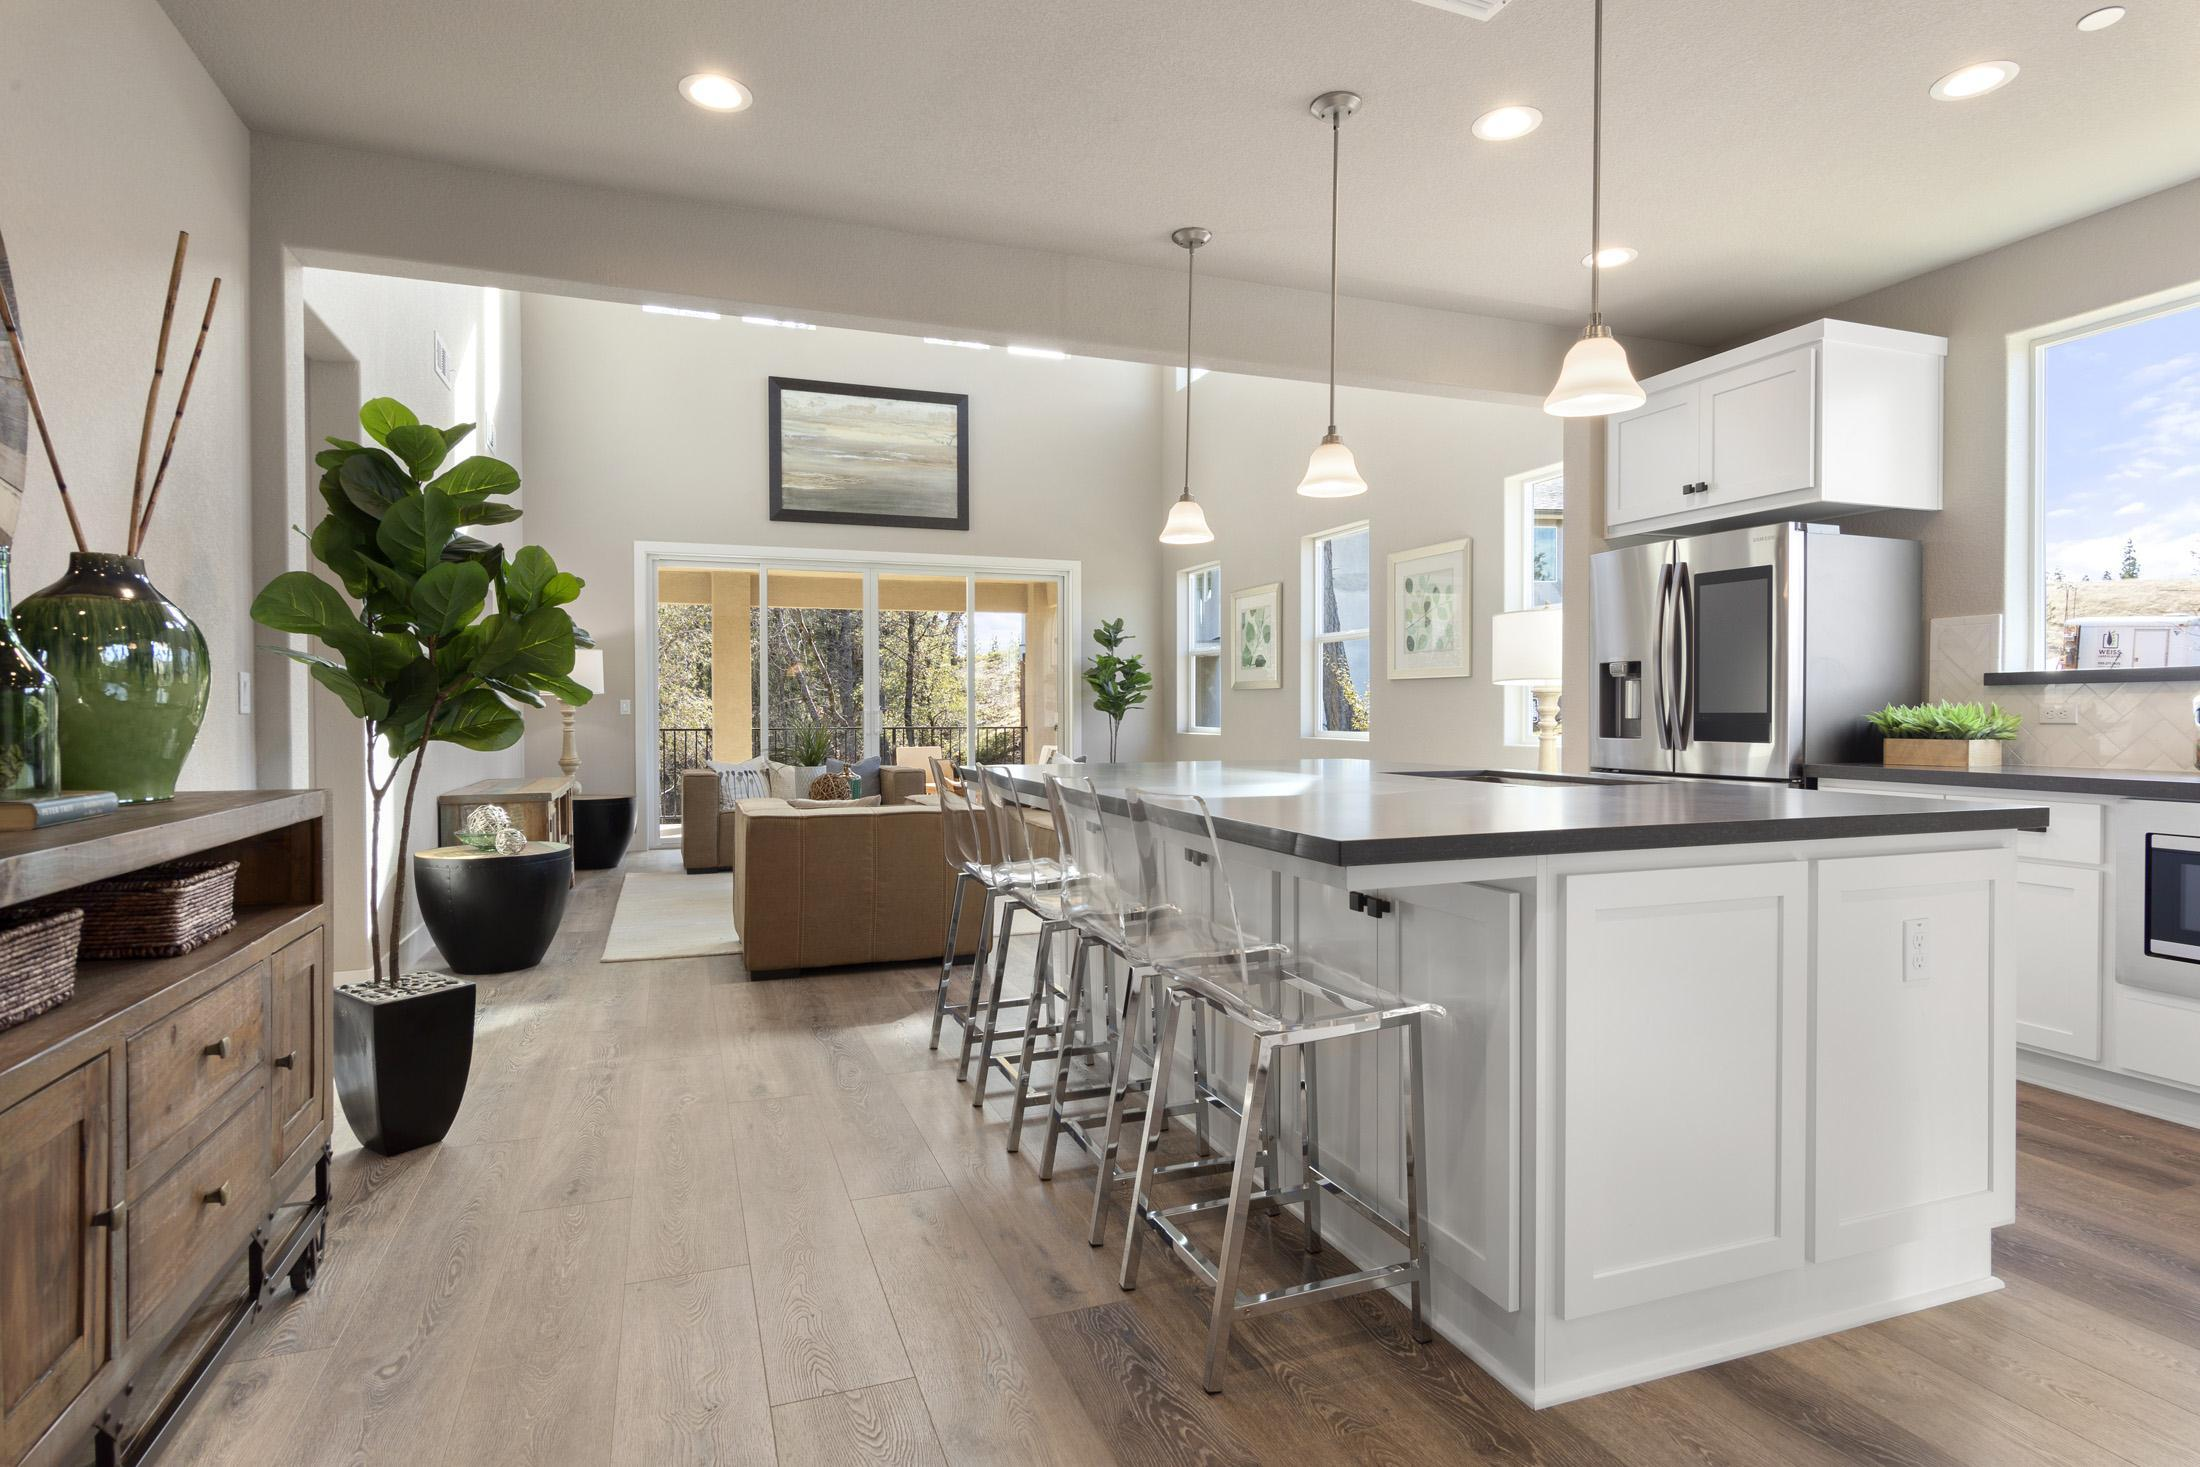 Kitchen featured in the PLAN 2523 By Next Crafted  in Sacramento, CA